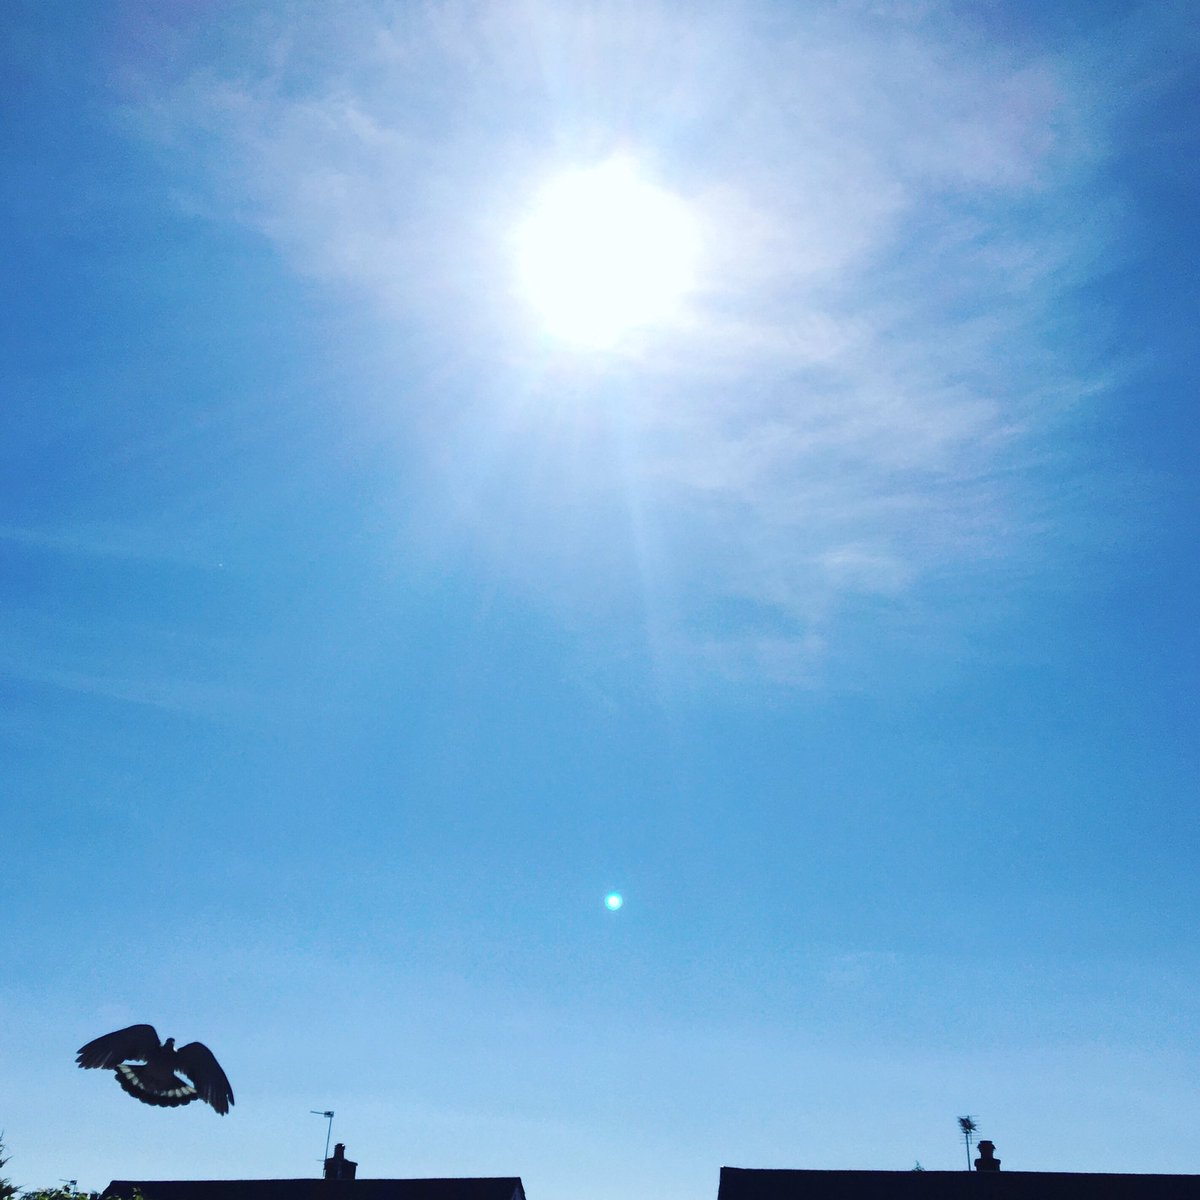 It's such a nice day, even the pigeons looks good!  Have a great week everybody!!  #mondaymotivation #workingfromhome #bluesky #actionshot #pigeon #flyingbird #sunshine #sunglare #happymonday #timeforacoffee